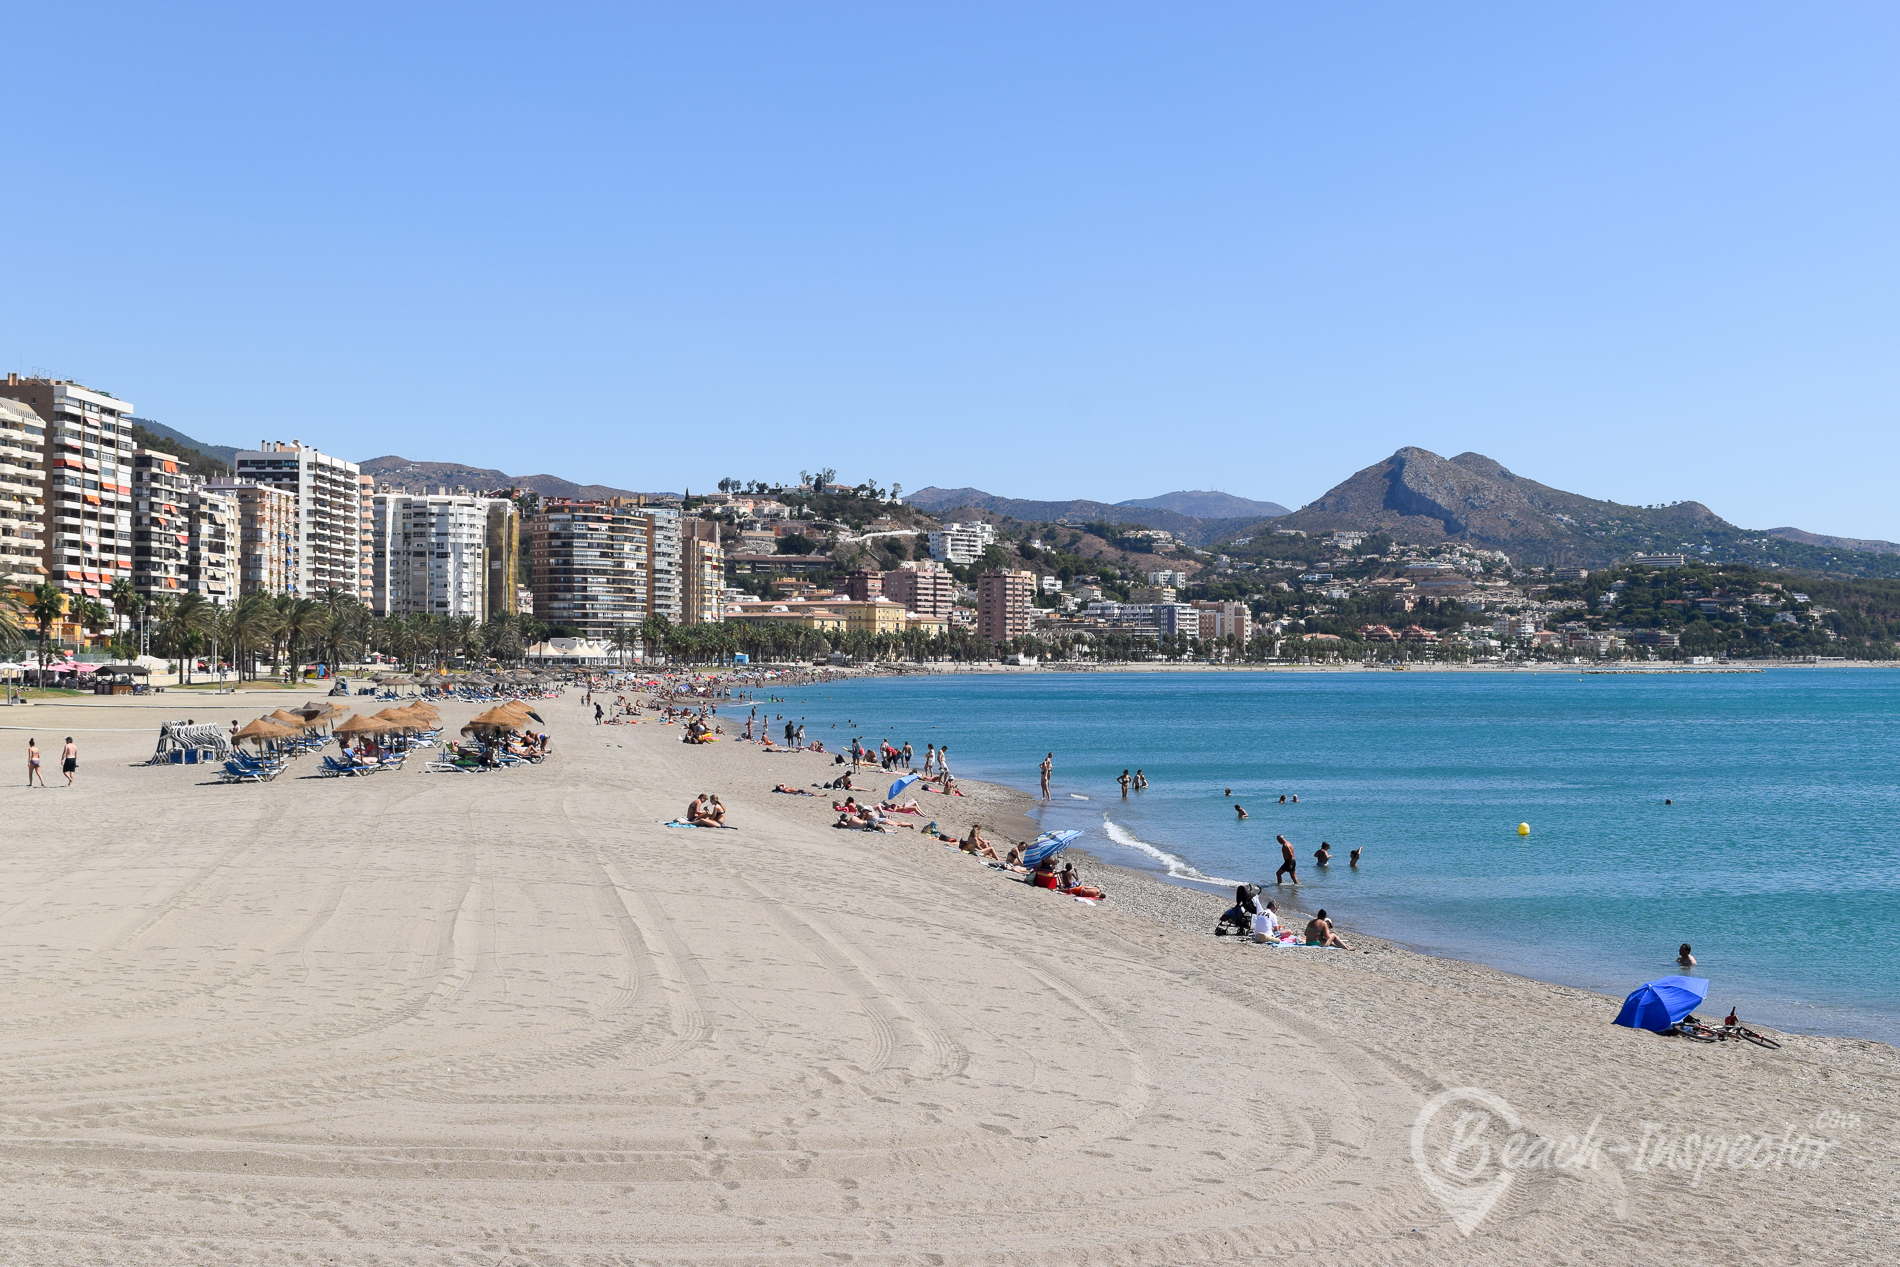 Playa de la Malagueta Costa del Sol Pictures videos insider tips